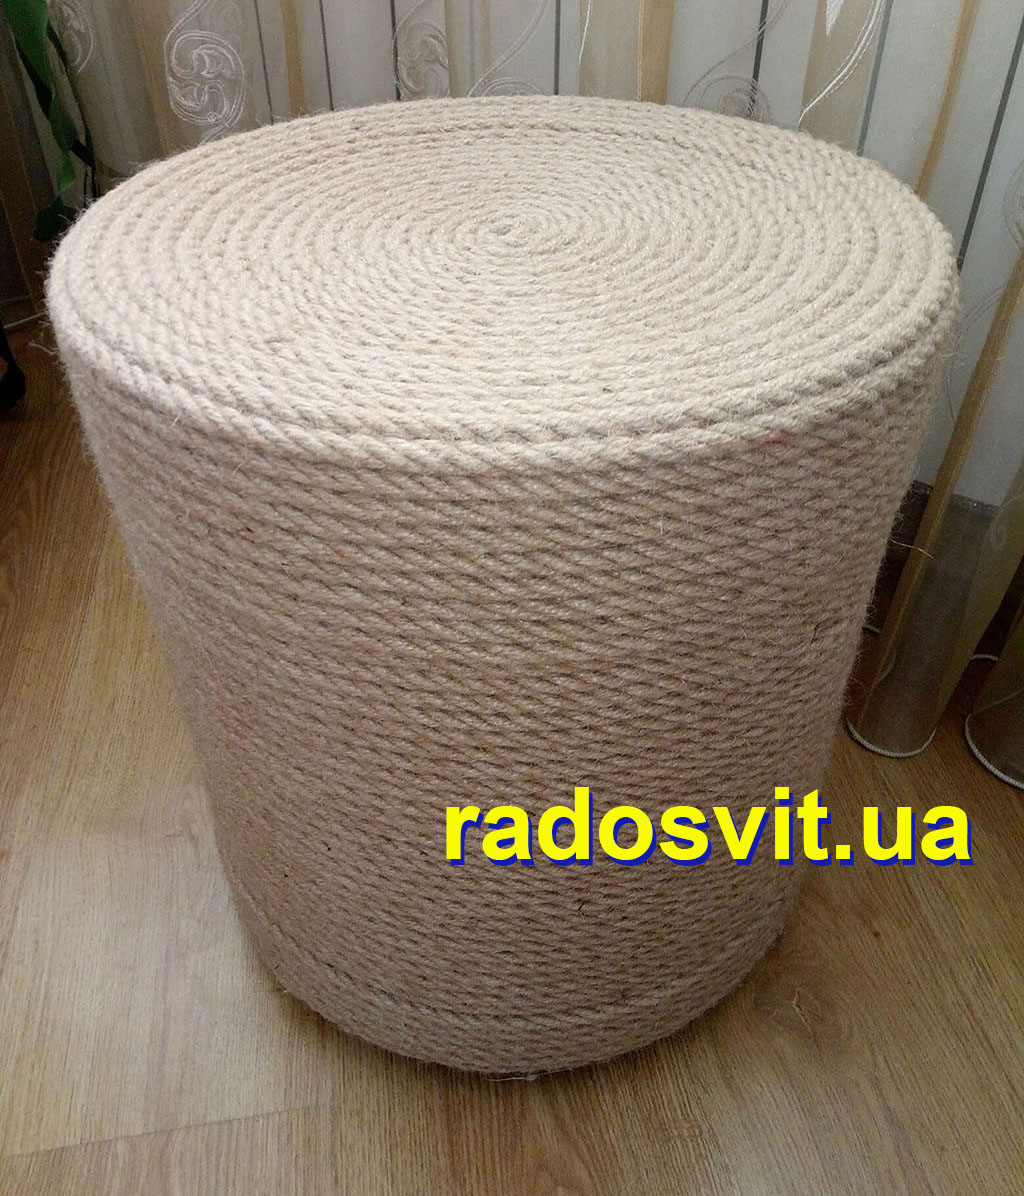 "Chair made from jute ropes ""Radosvit"""